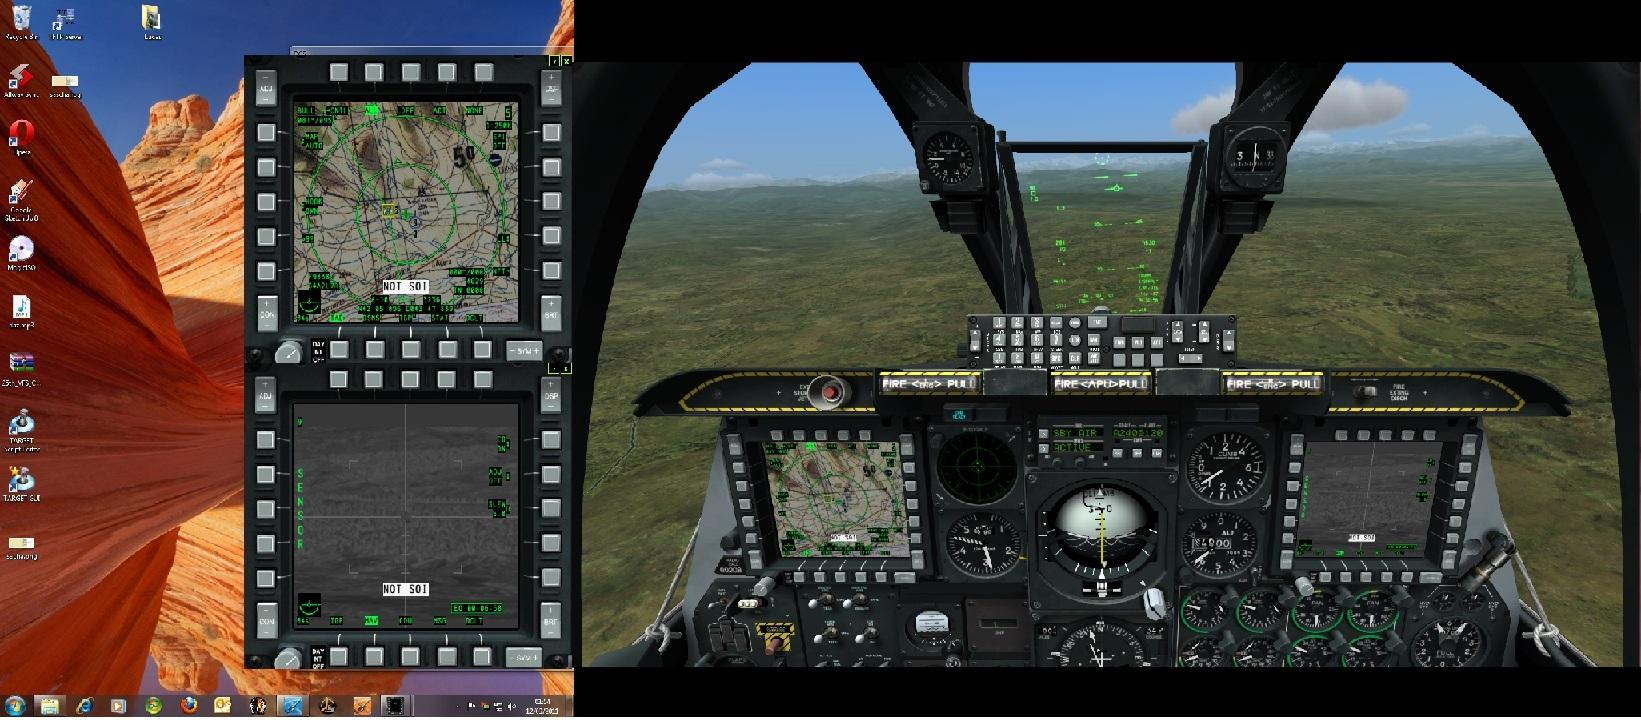 Mouse clickable MFCD's in multi-screen setups - SimHQ Forums